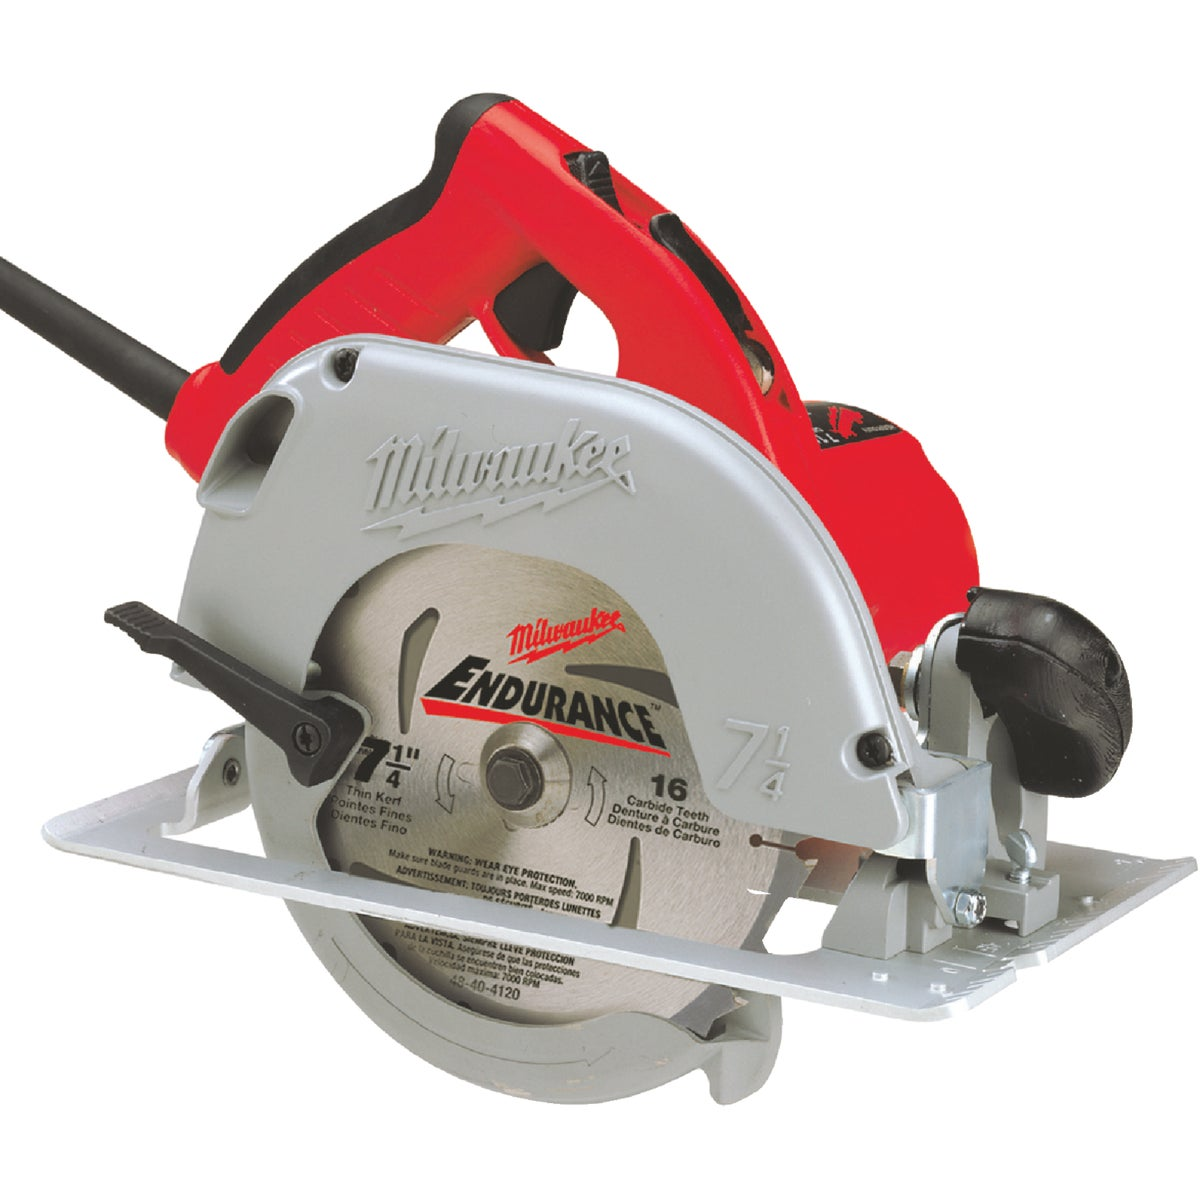 "7-1/4"" 15A CIRCULAR SAW - 639021 by Milwaukee Elec Tool"